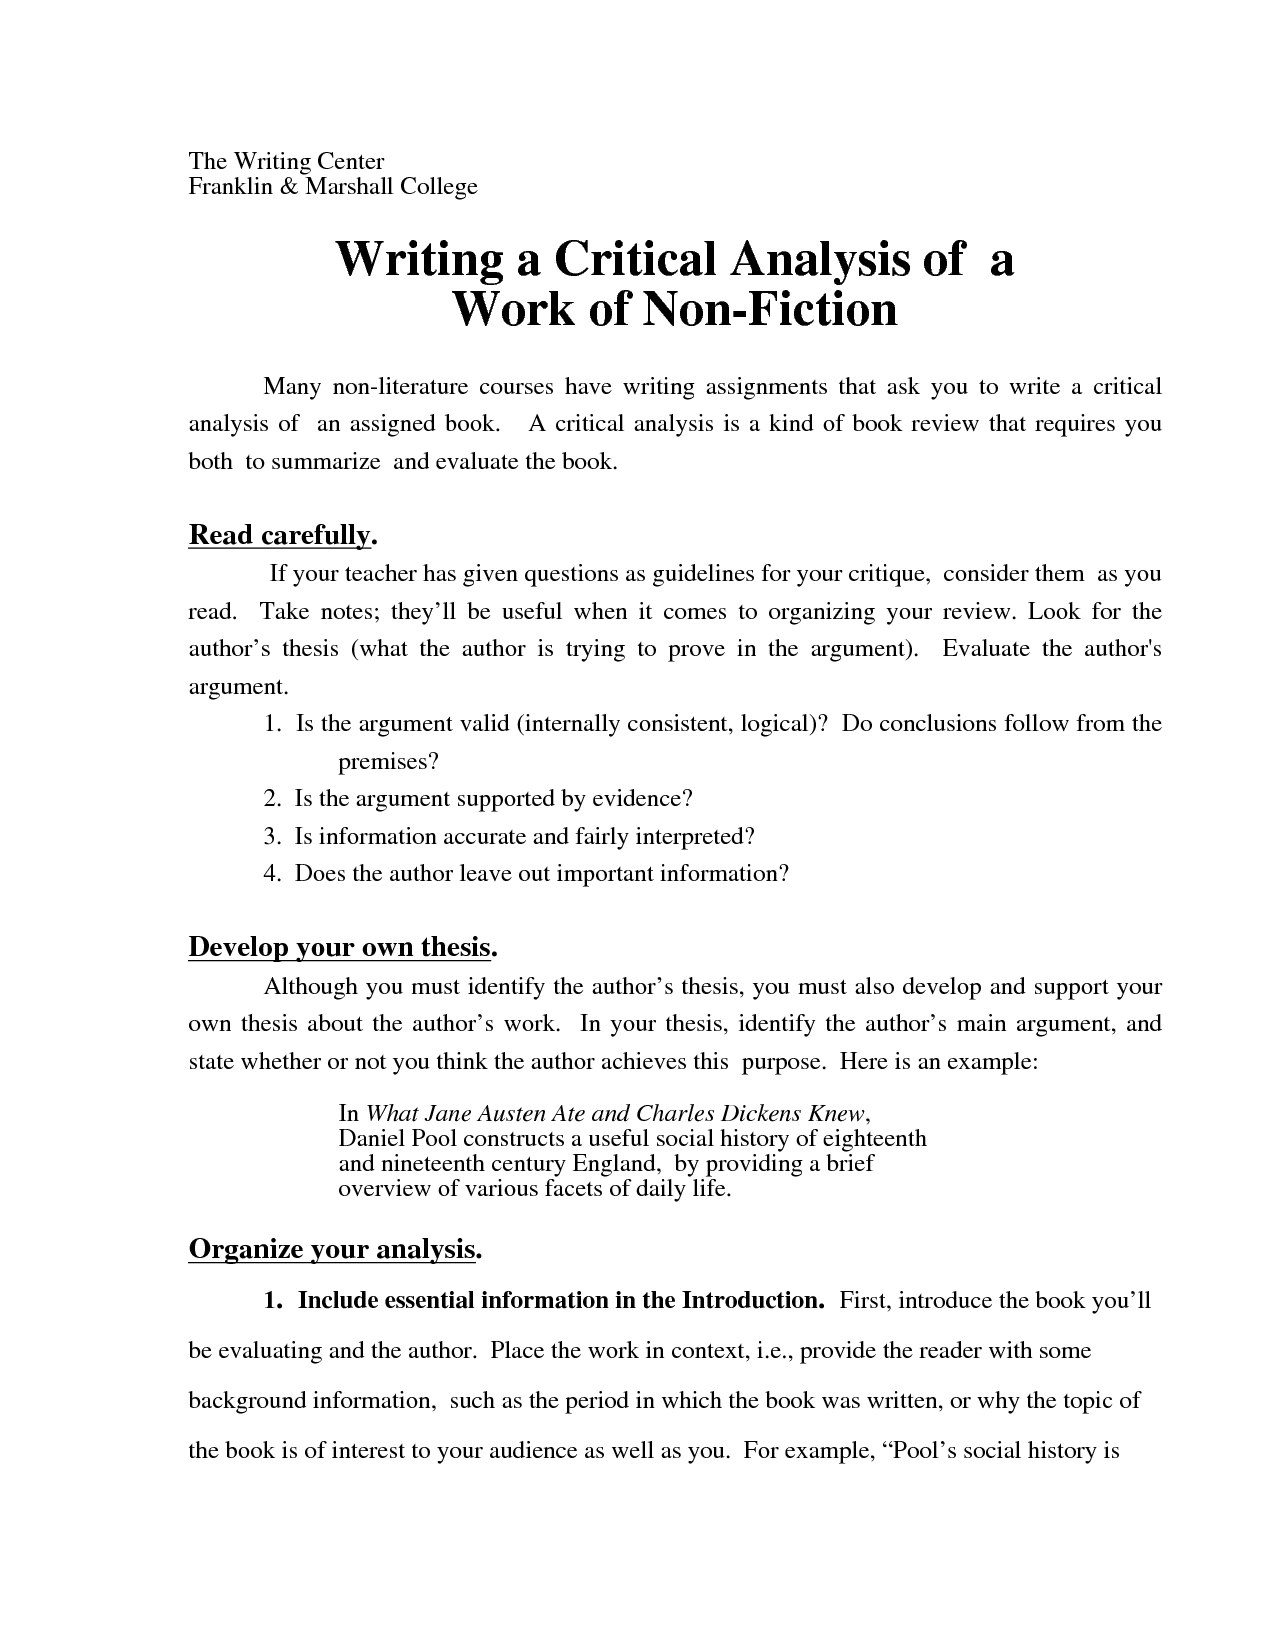 004 How To Begin Critical Essay Nurse Research Papers Vanderbilt Reliable Writing Service Uk Write Quotes From Book In An Analysis Paper Examples 1 Series Title Mla Name Apa Amazing A Review Structure Response Full